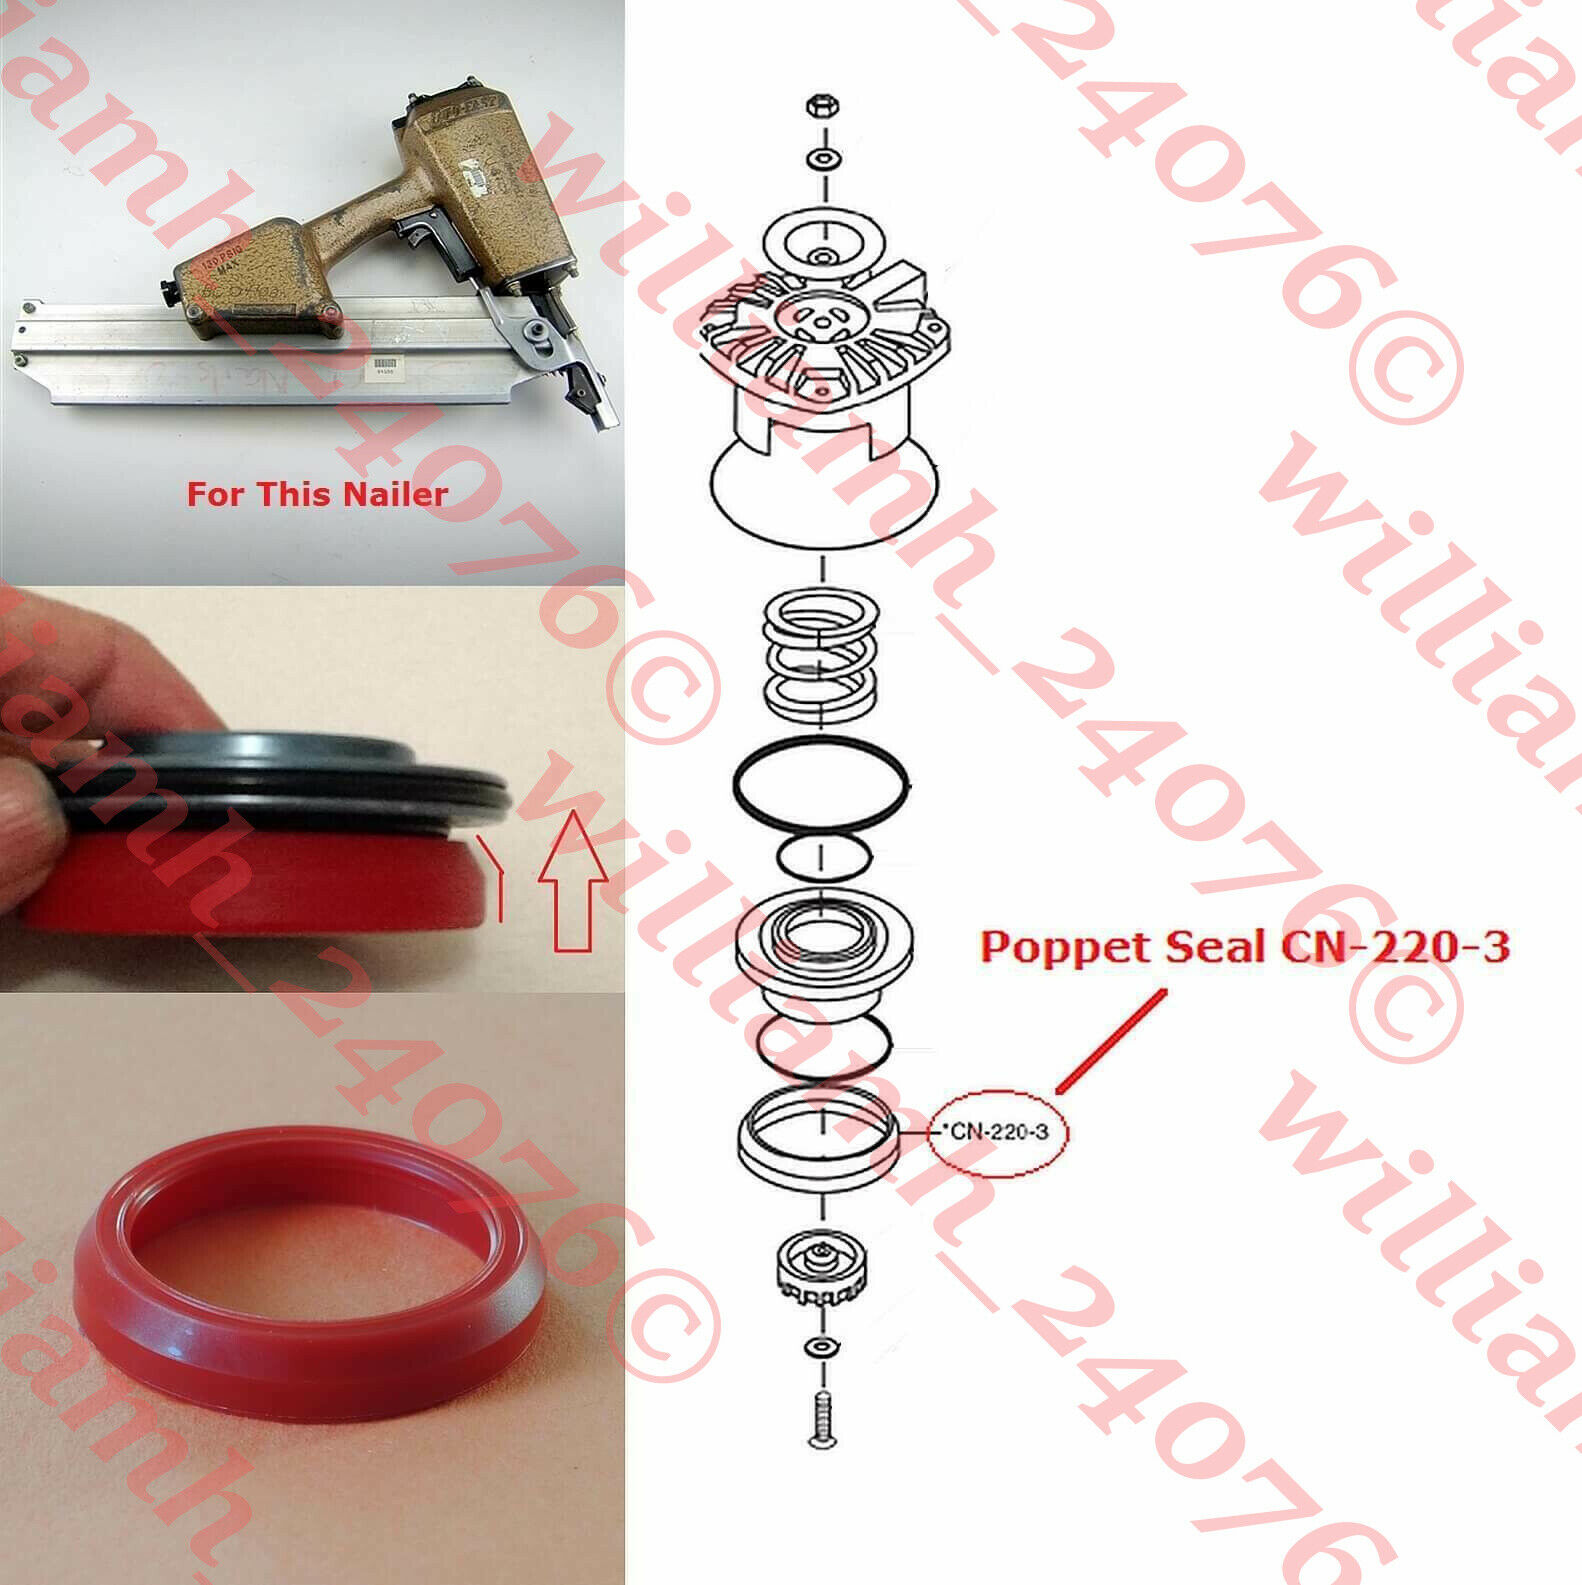 CN-220-3 williamh_24076 Duo-Fast Part CN-220-3 Poppet Seal  for CN-350 CN325